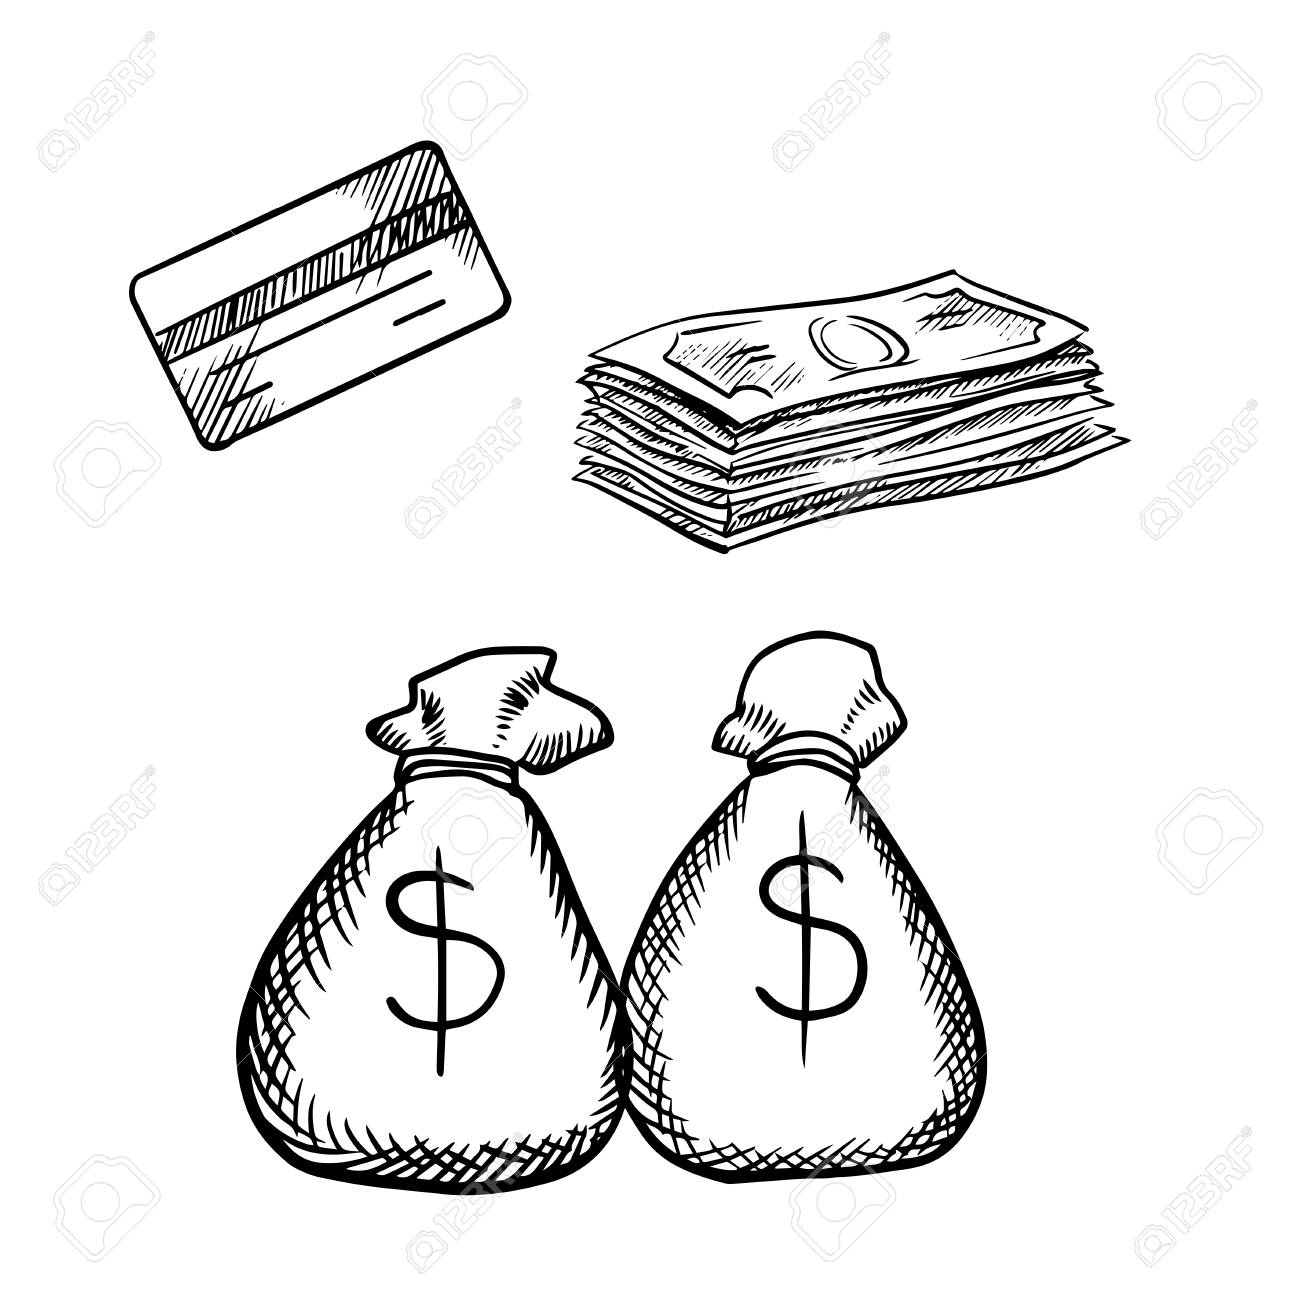 1300x1300 Bank Credit Card, Stack Of Dollar Bills And Money Bags With Dollar